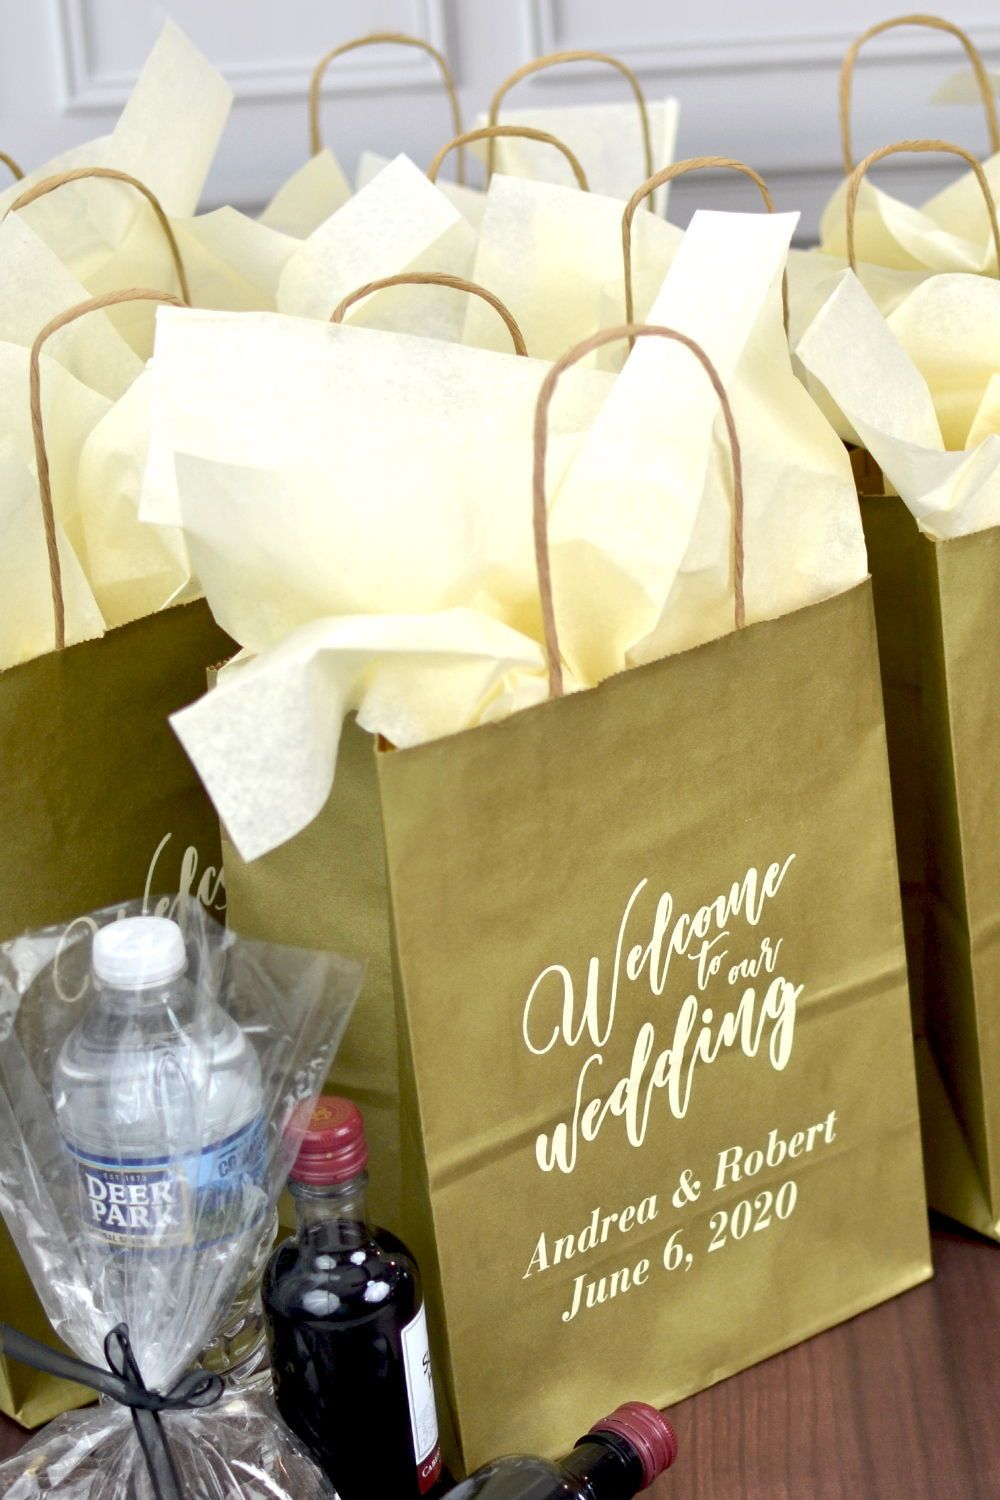 8 X 10 Kraft Wedding Welcome Gift Bags Personalized Wedding Welcome Gifts Wedding Hotel Gift Bags Wedding Hotel Gifts